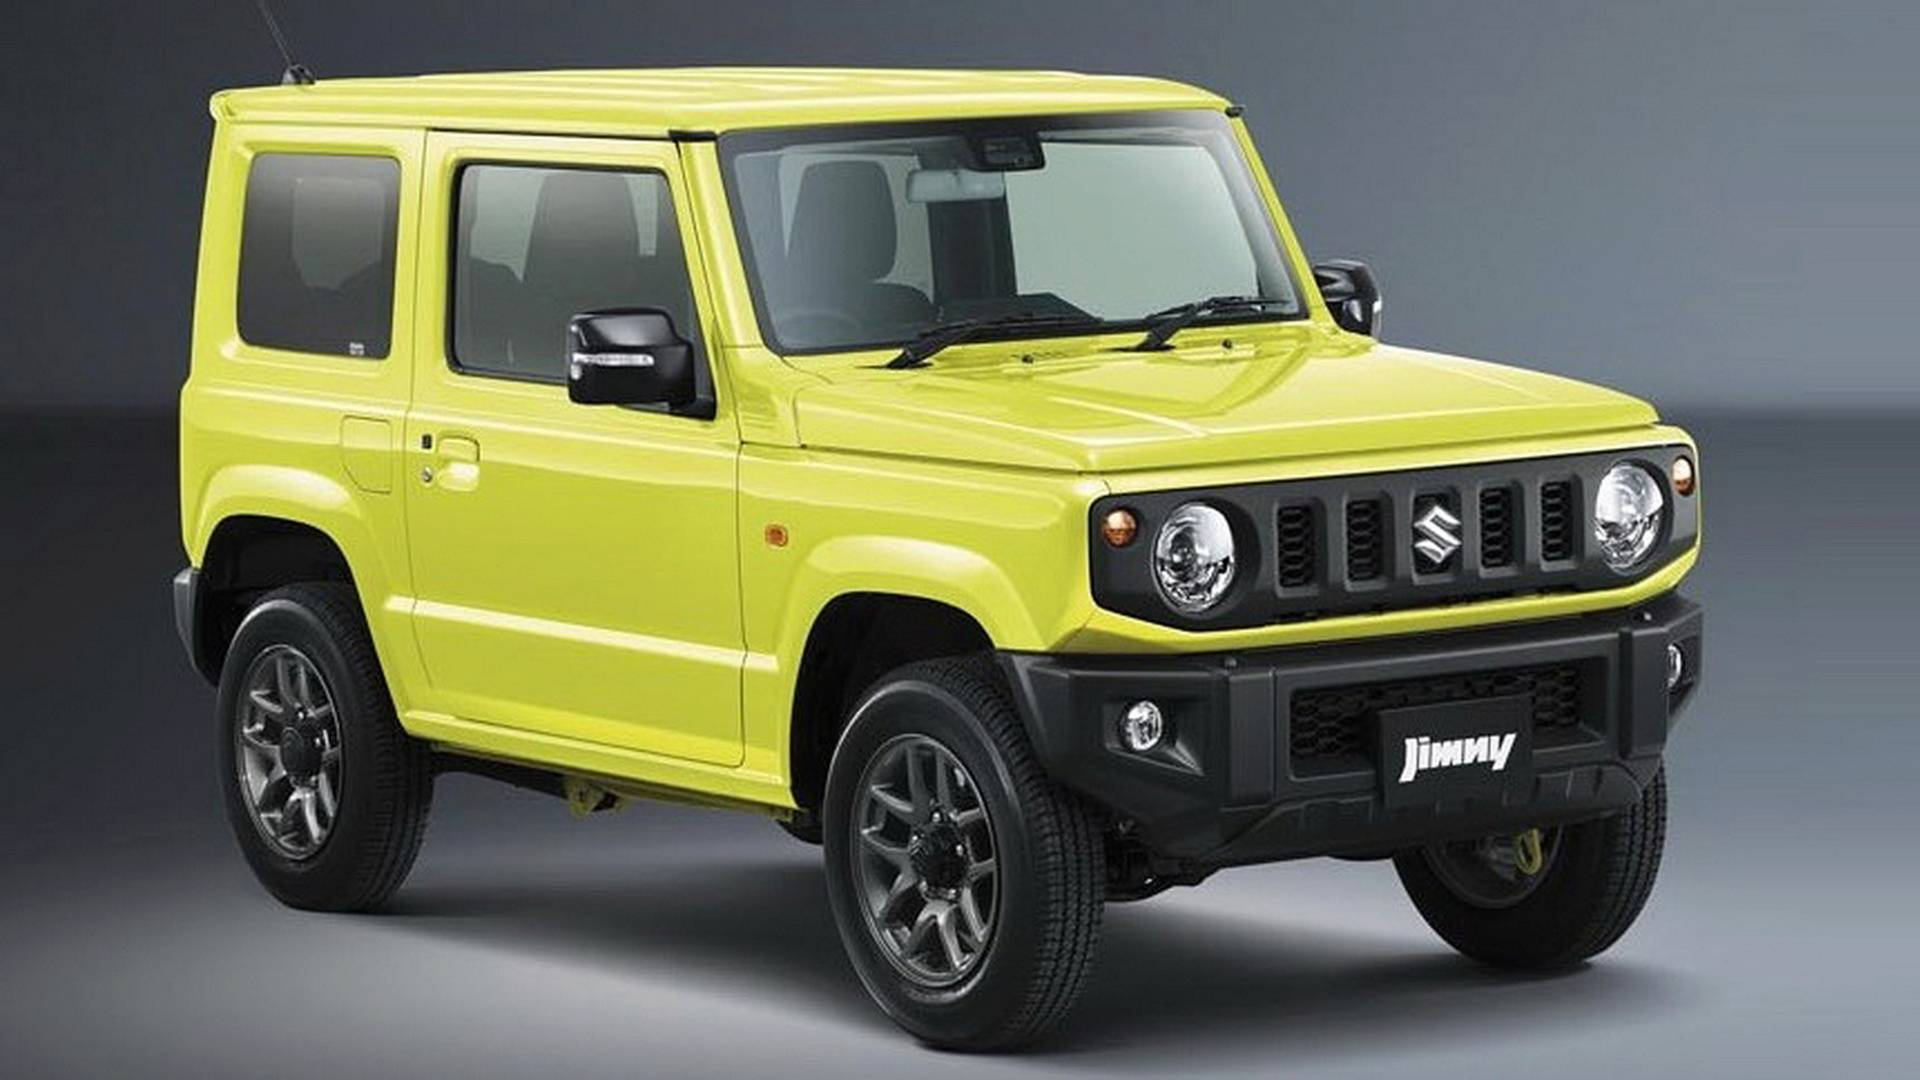 2018 suzuki jimny gets 1 5 liter engine in europe autoevolution. Black Bedroom Furniture Sets. Home Design Ideas